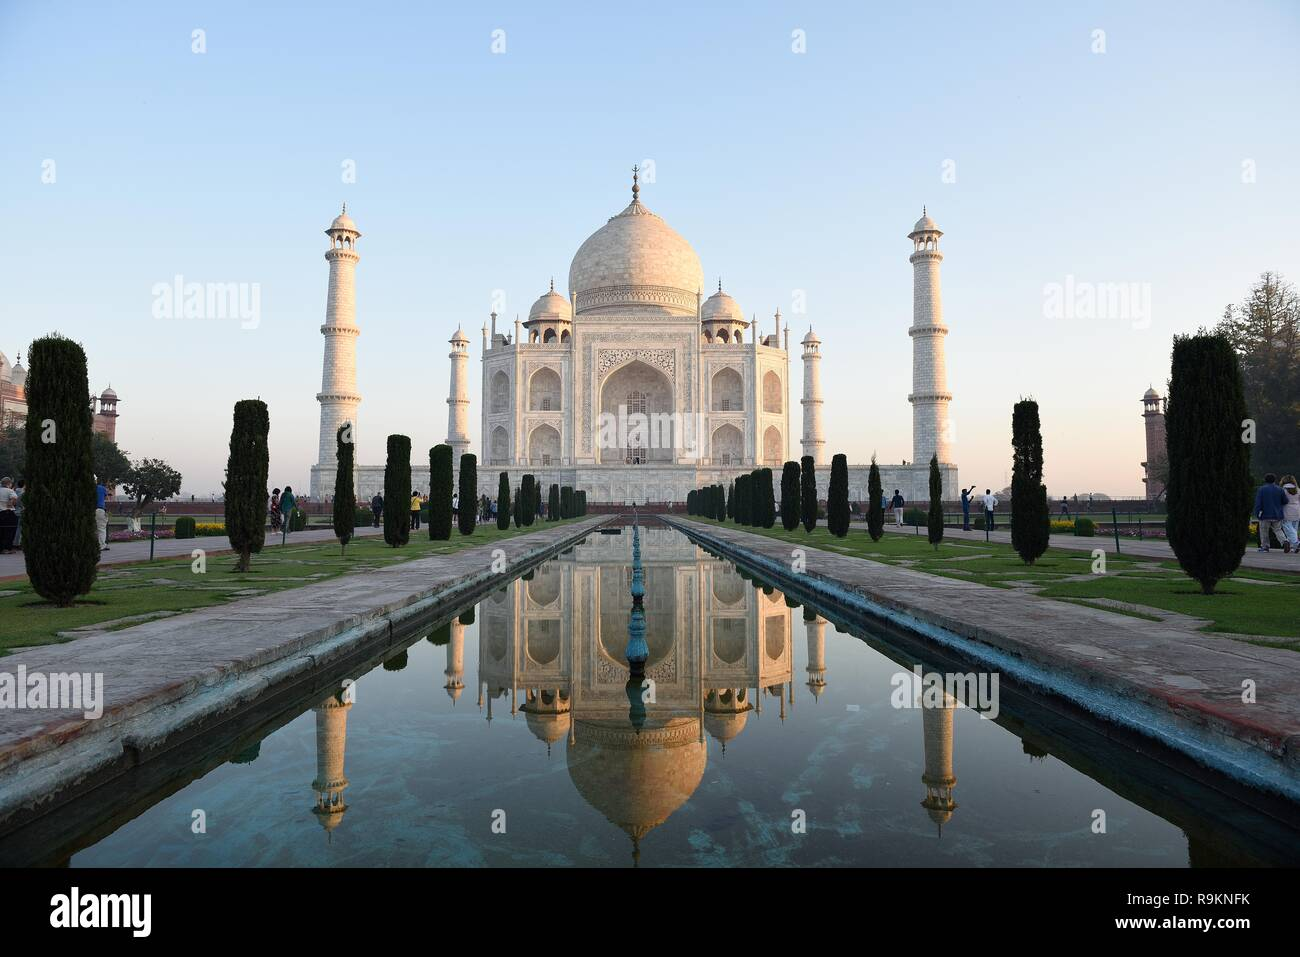 Famous white marble Taj Mahal with water reflections at sunrise in Agra, India. - Stock Image